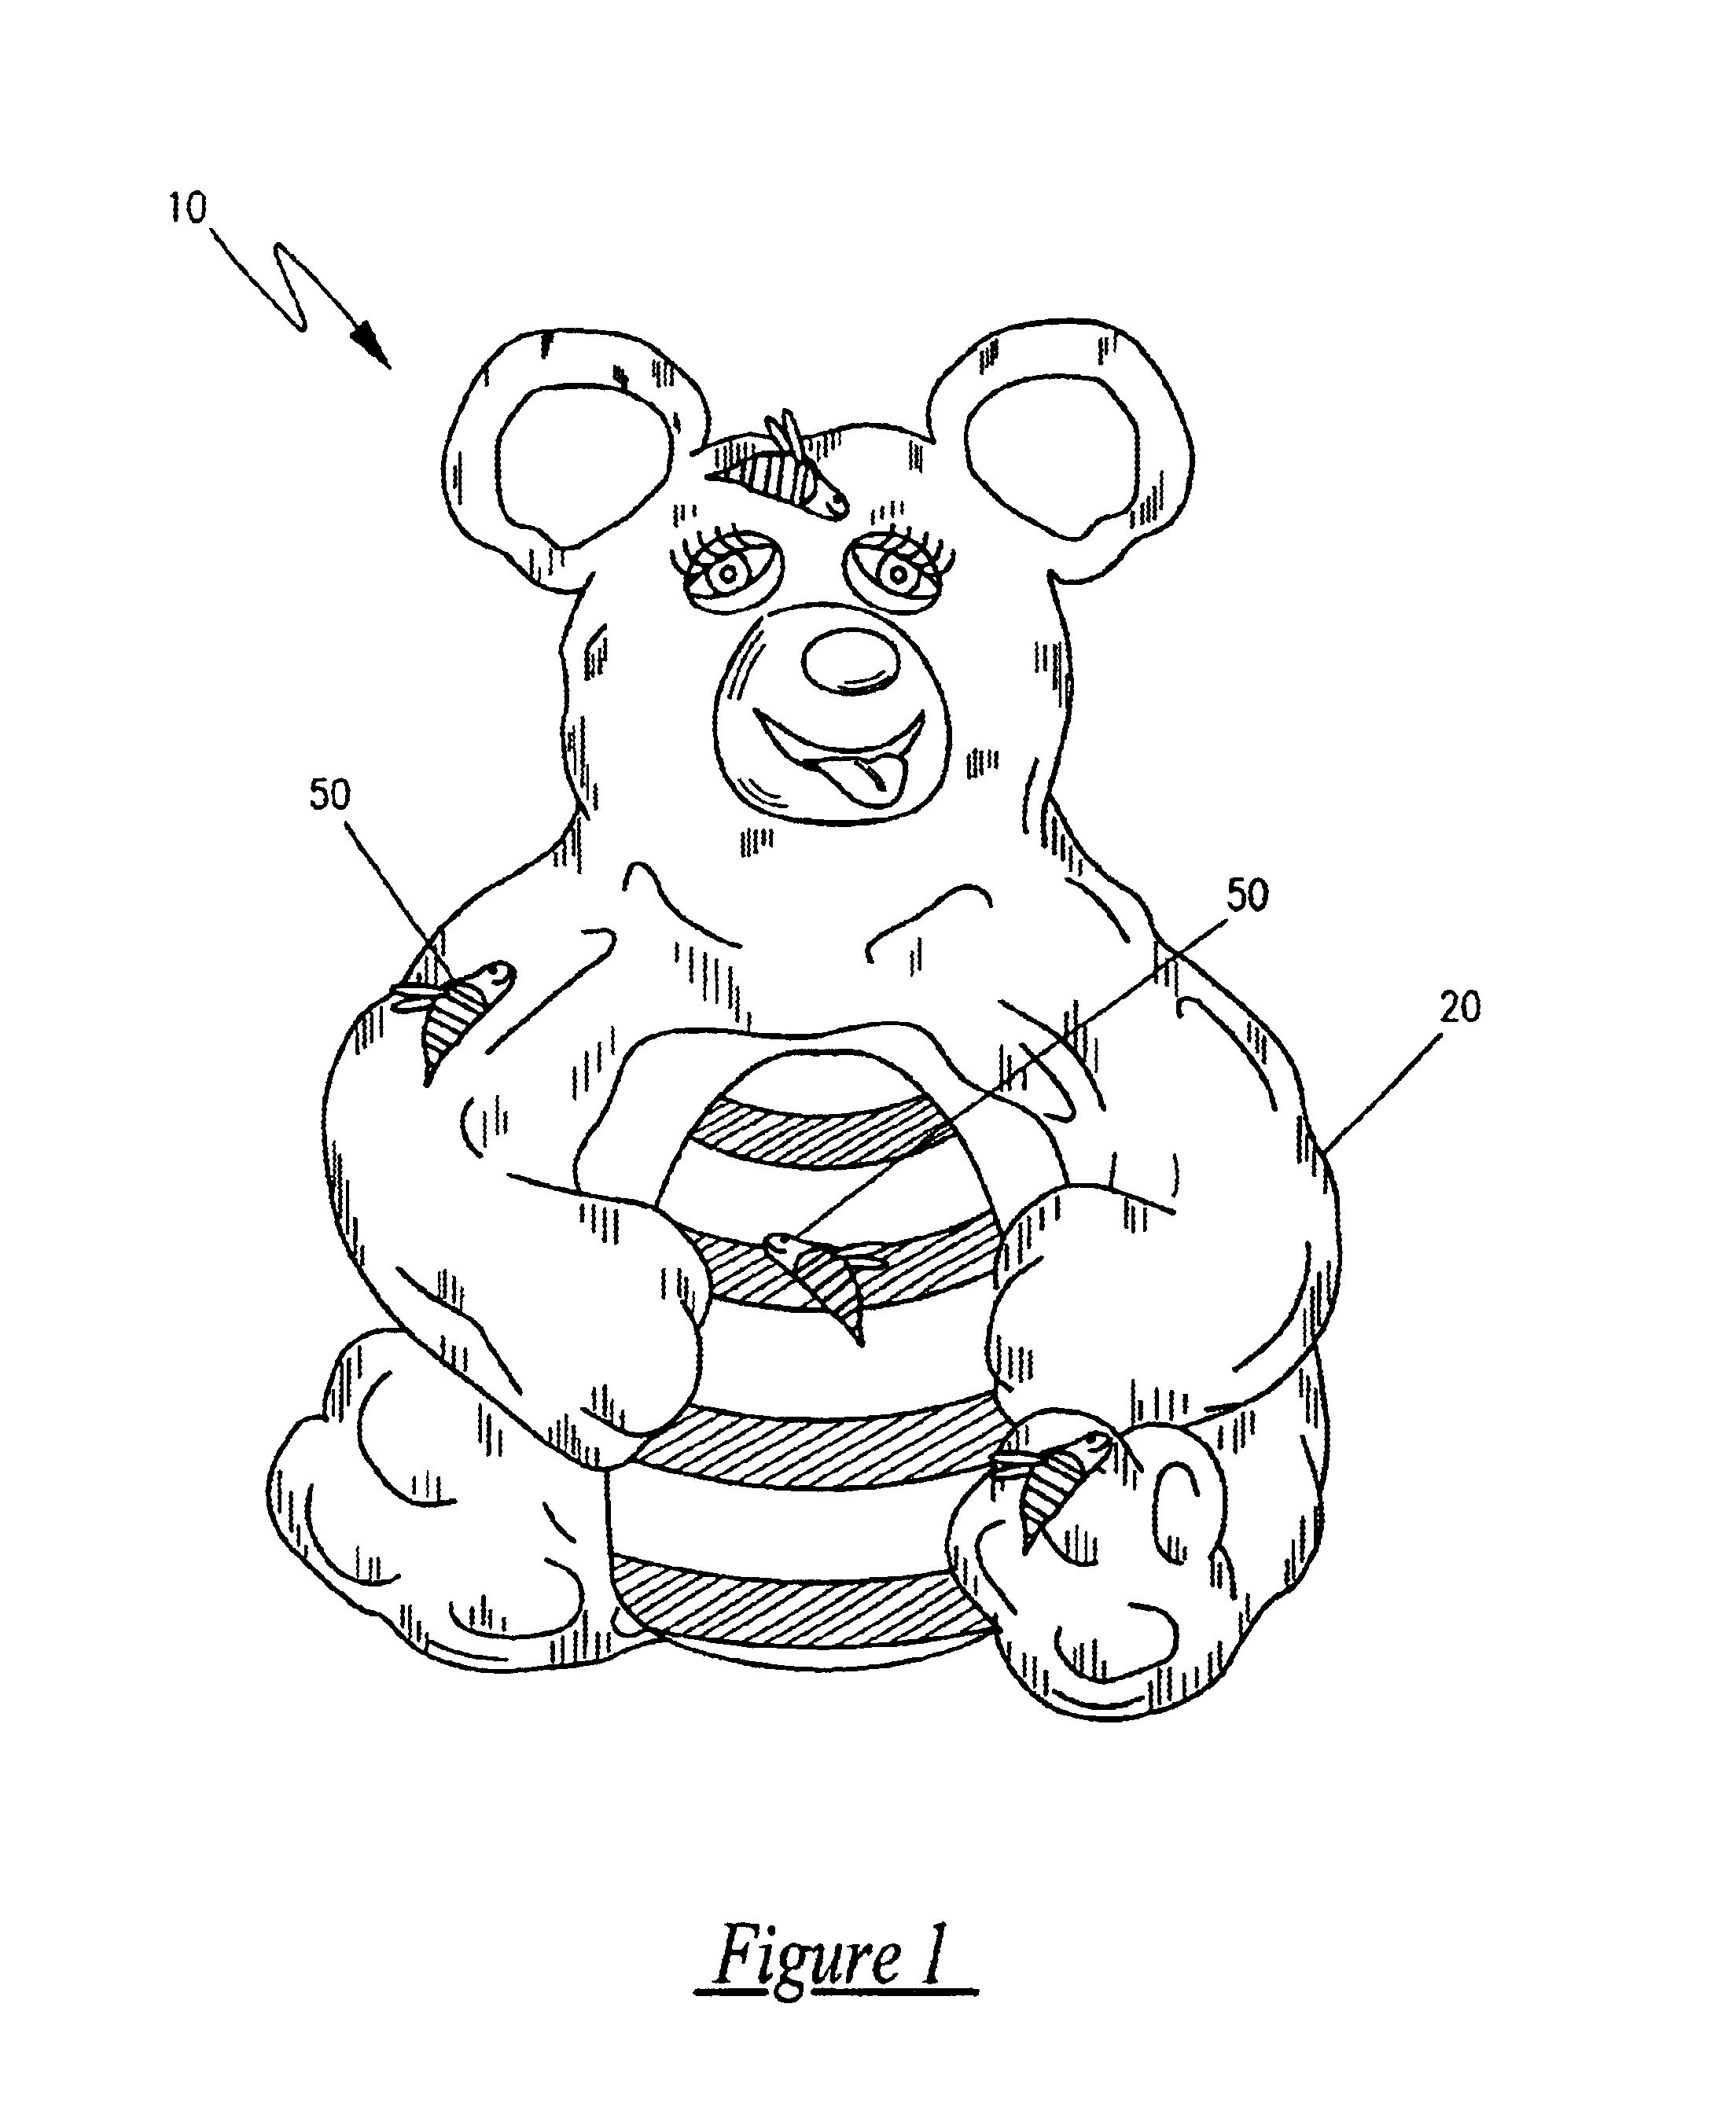 patent us teddy bear plush toy and game bination